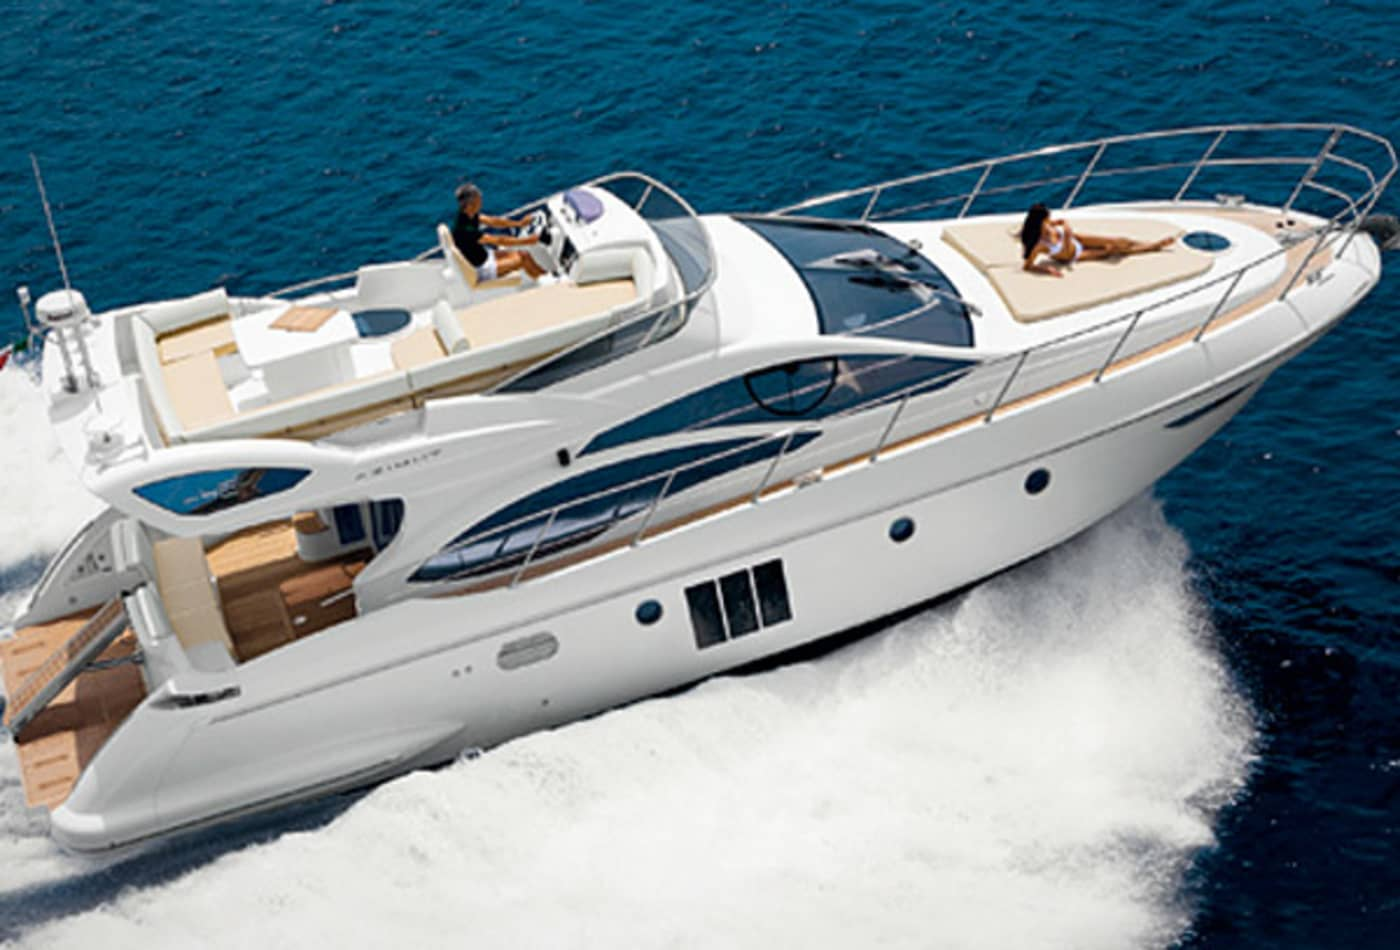 Scenes-from-2012-boat-show-azimut48.jpg